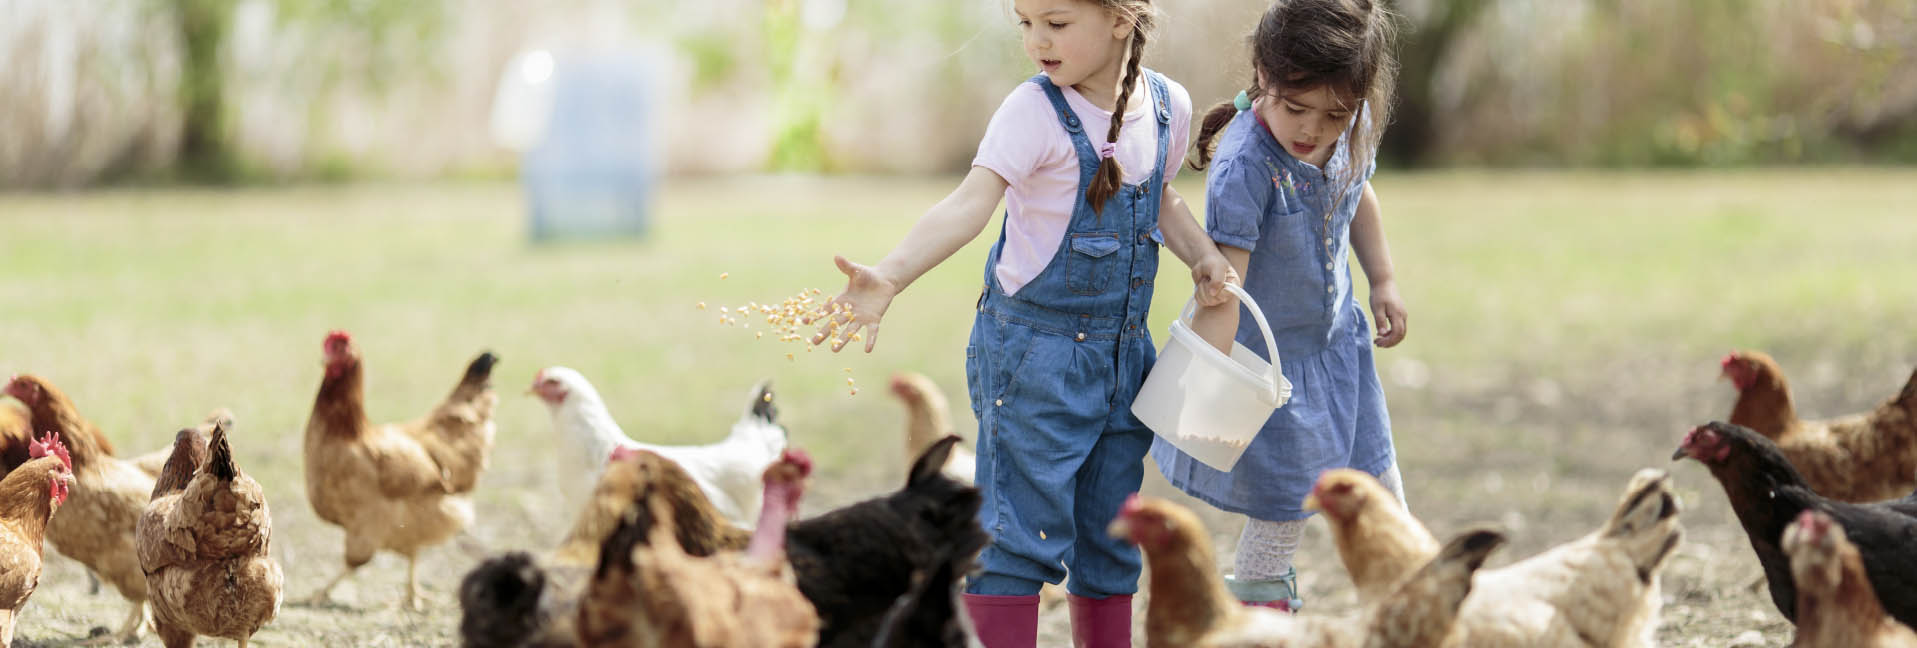 LearnAboutChickens